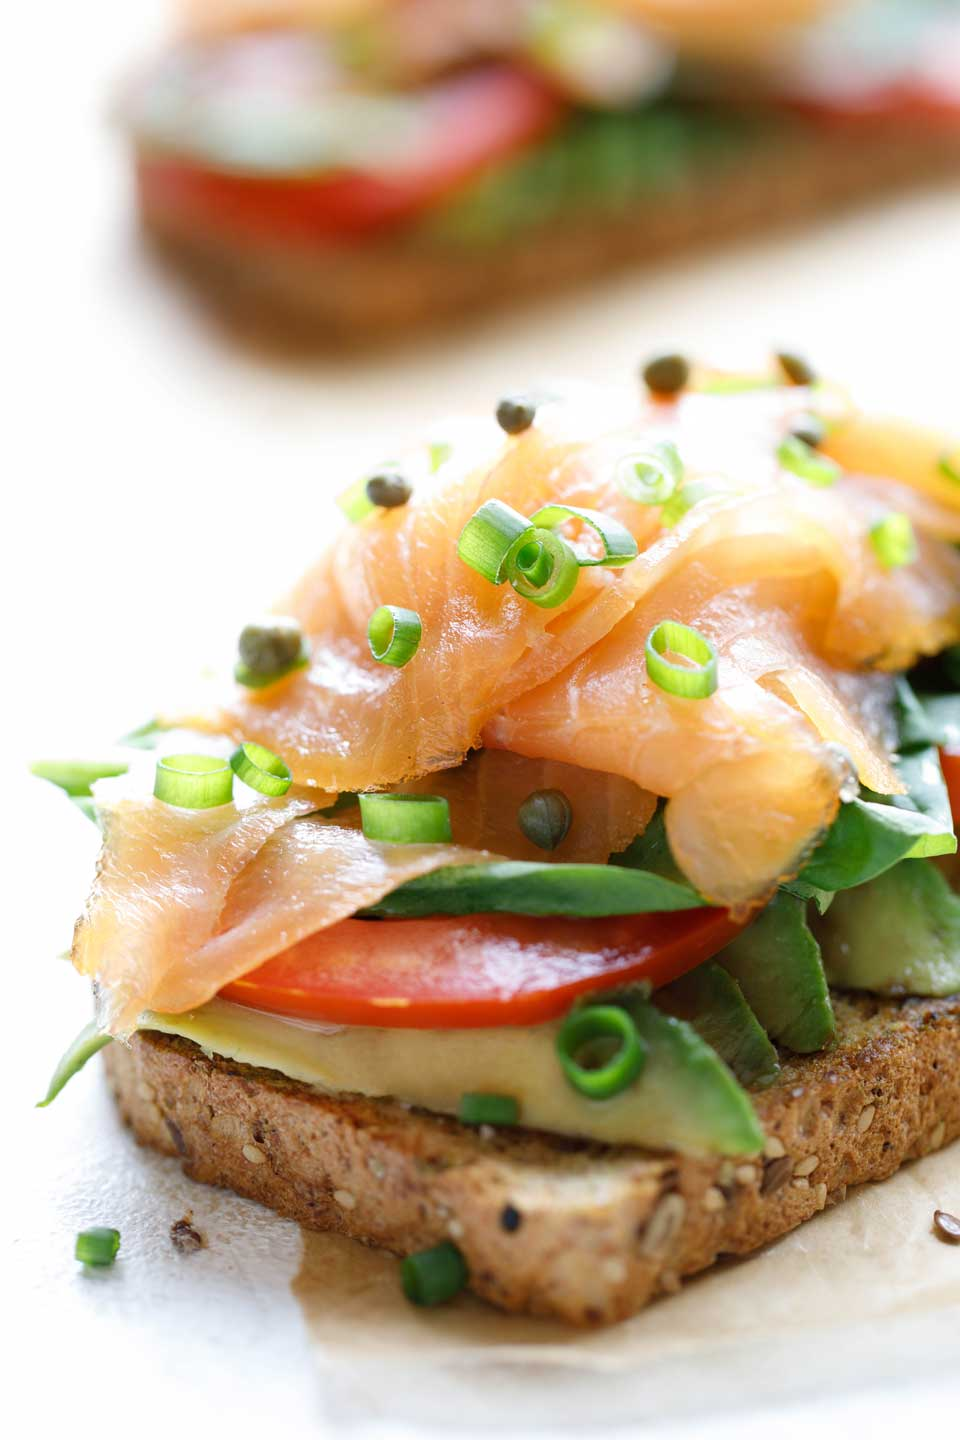 5 Minute Healthy Avocado Toast With Smoked Salmon Two Healthy Kitchens,Coin Dealers Near Me